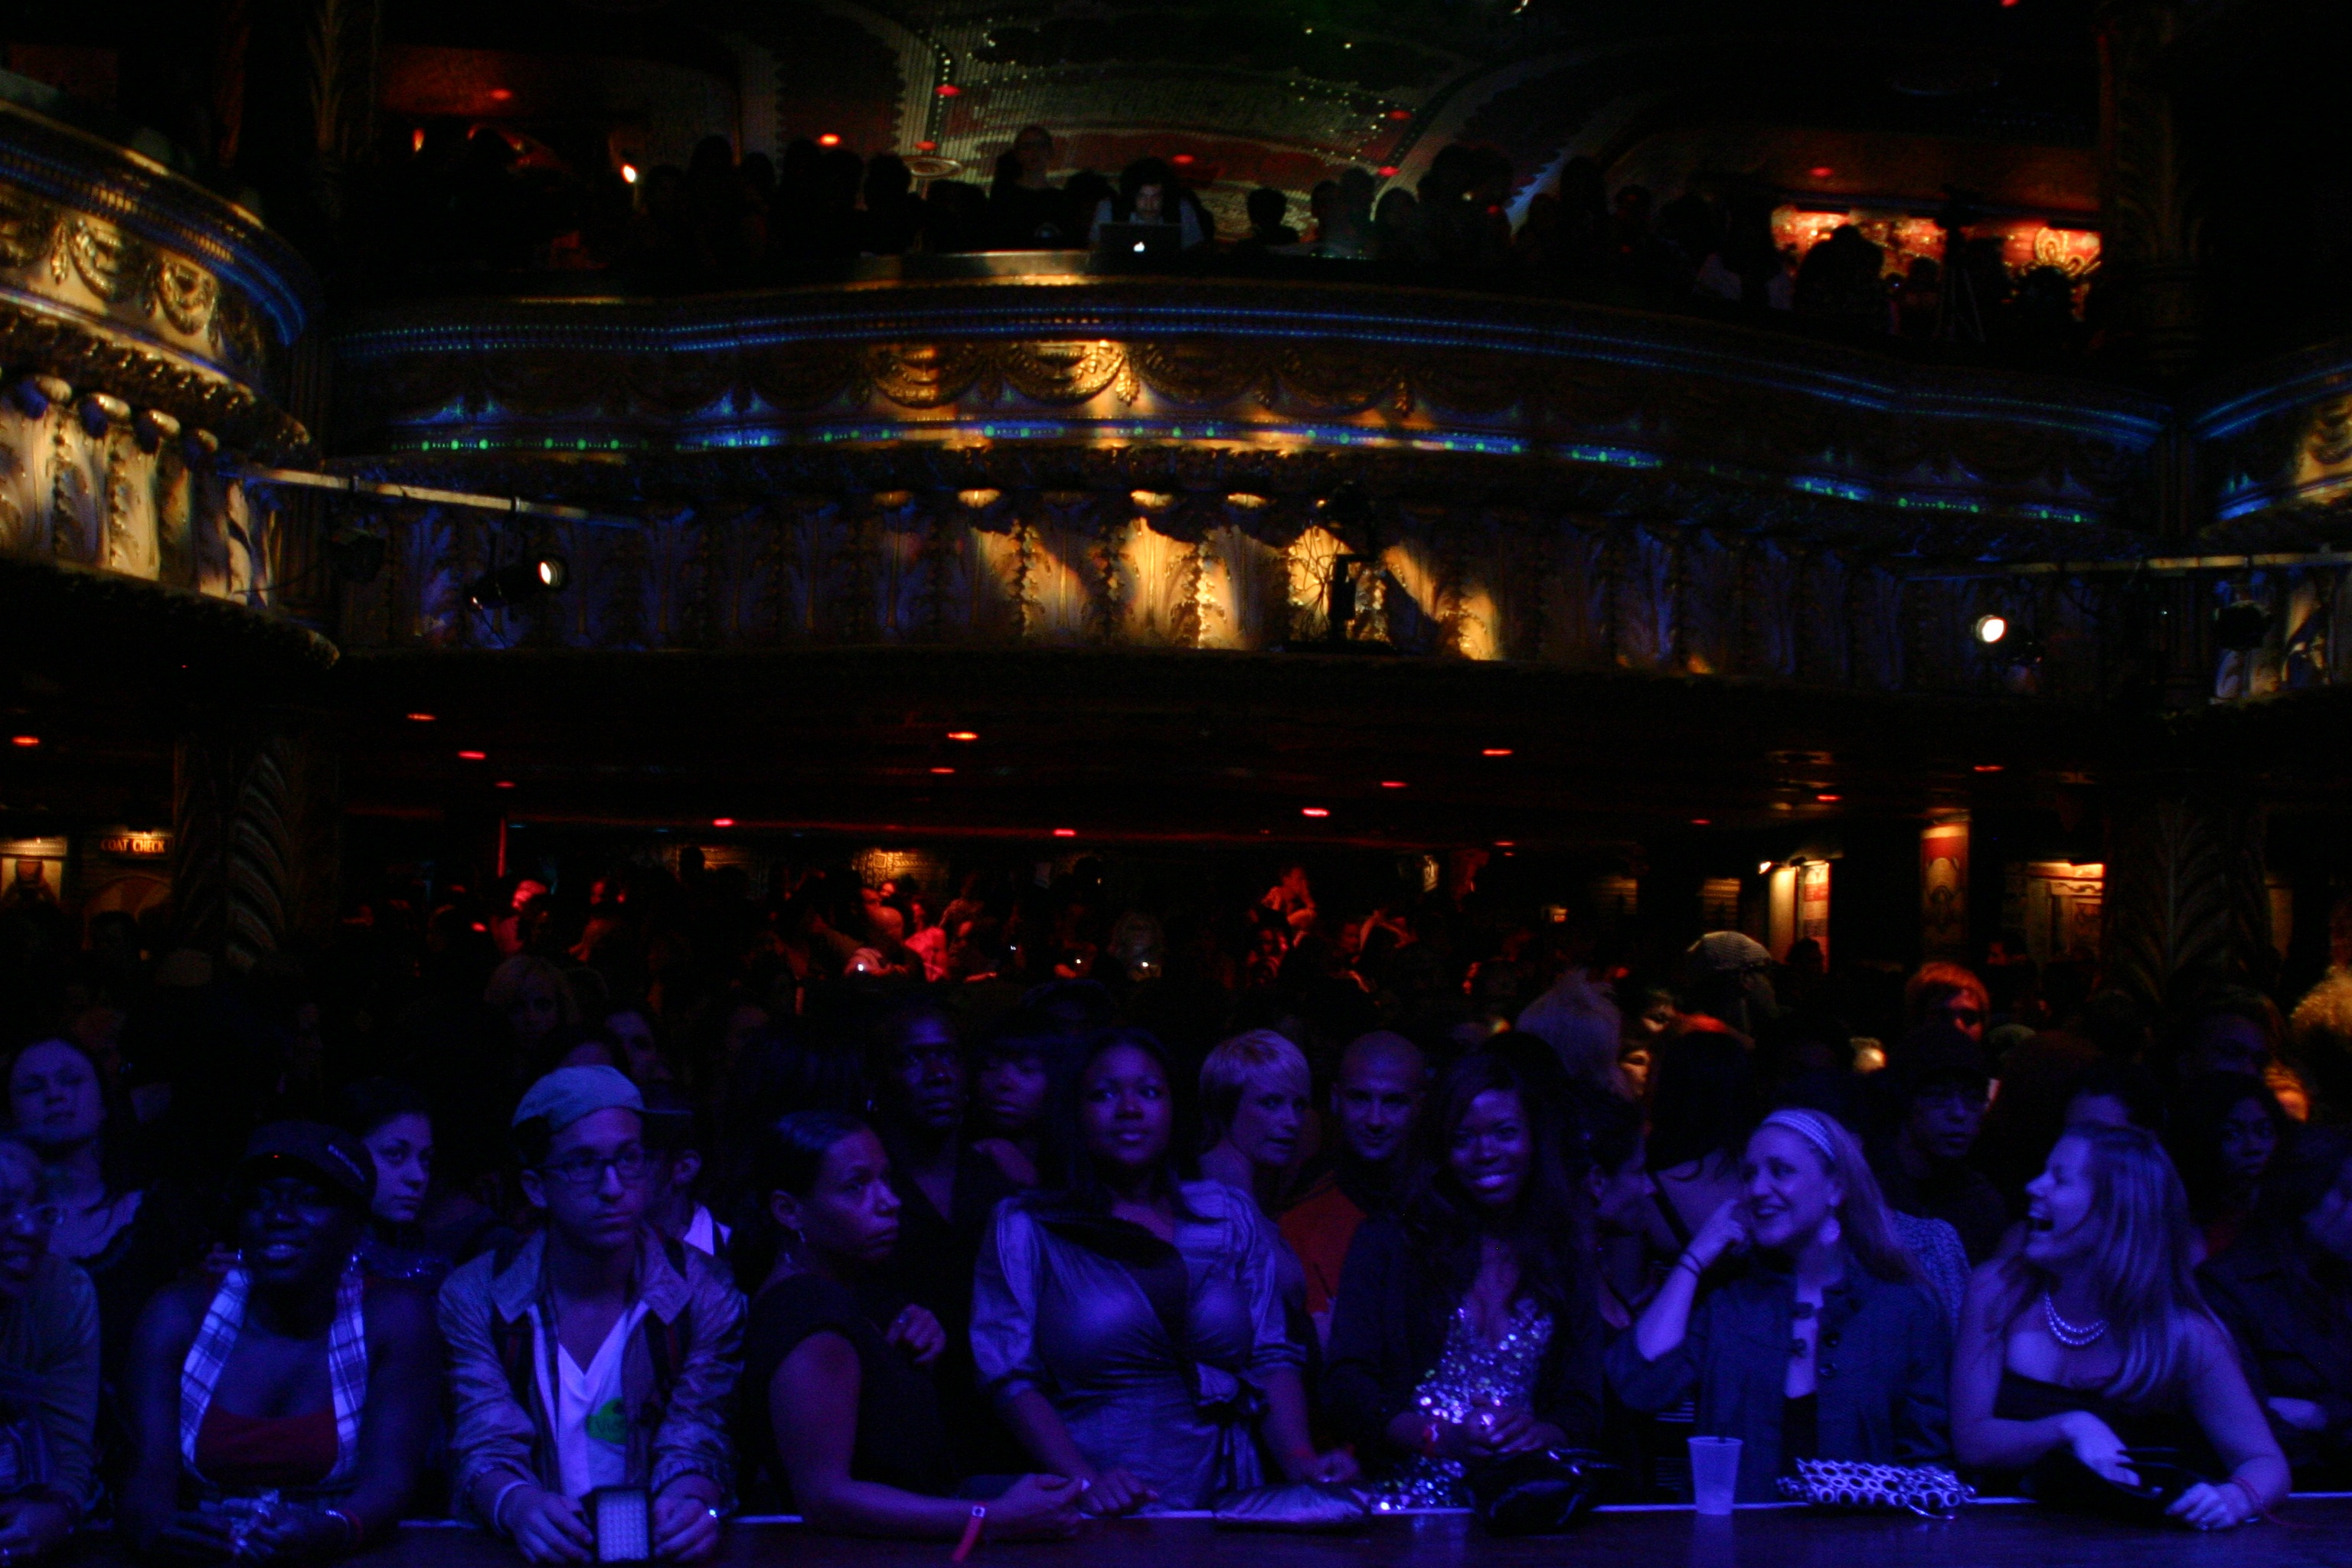 house-of-blues-audience.jpg